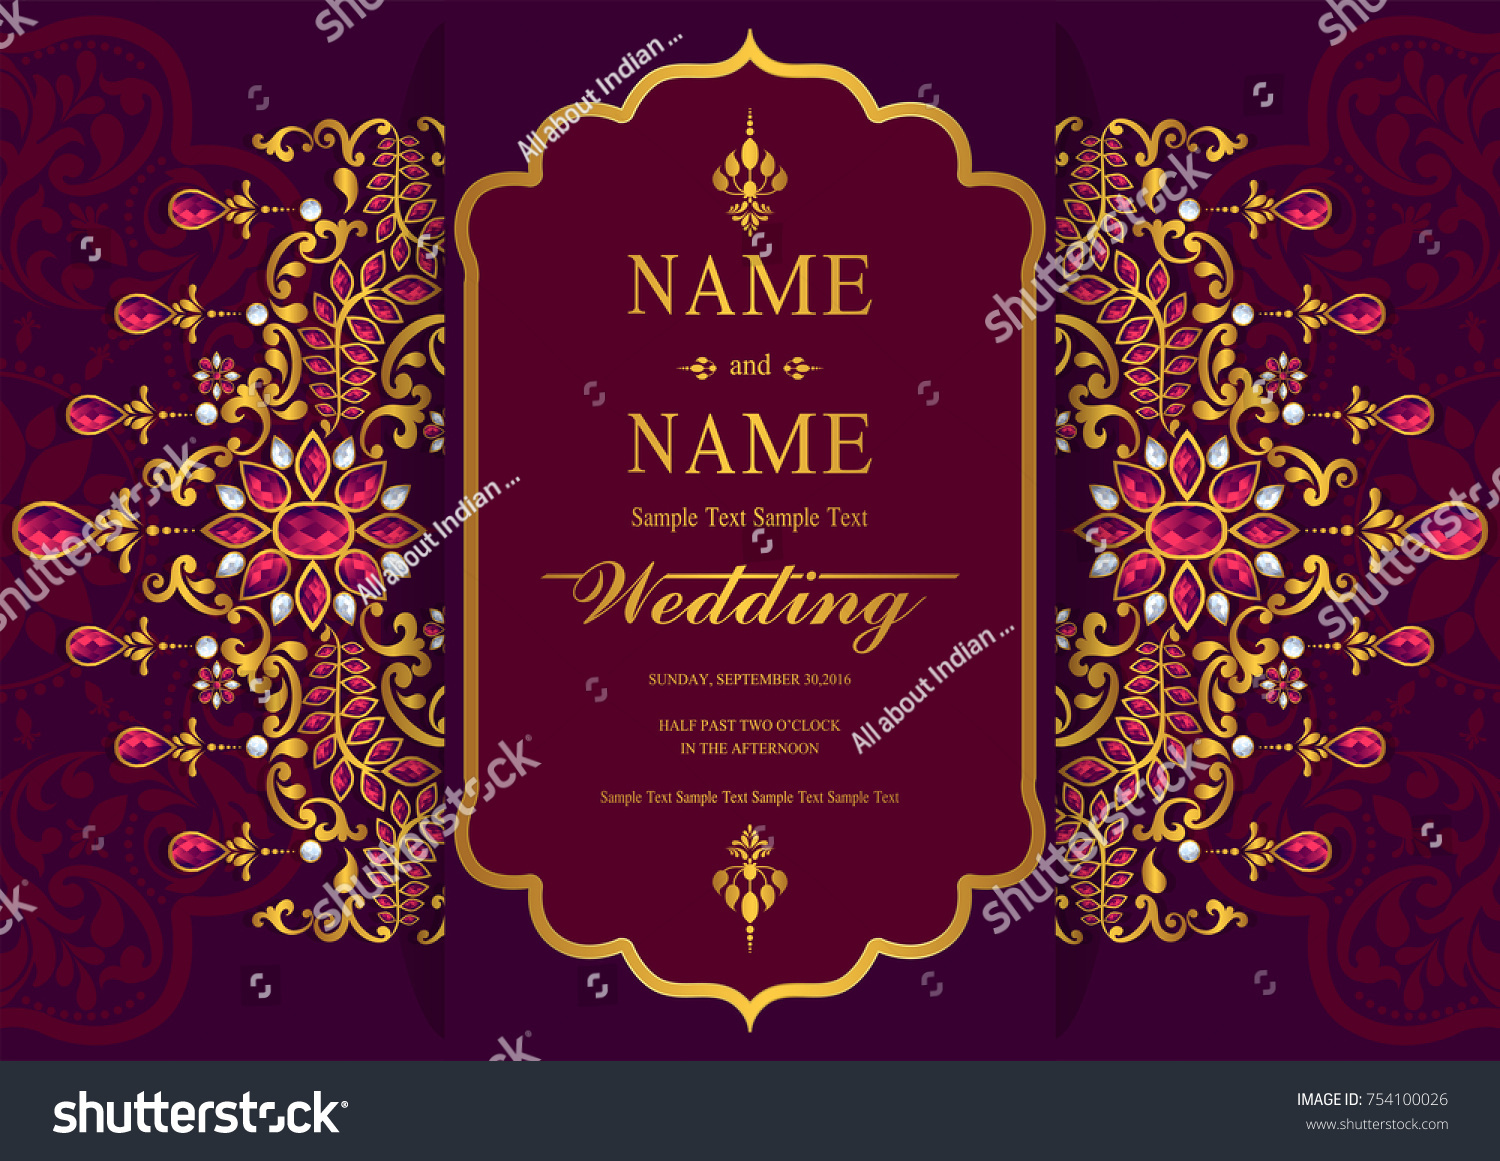 Indian Wedding Invitation Card Templates Patterned Stock Vector ...